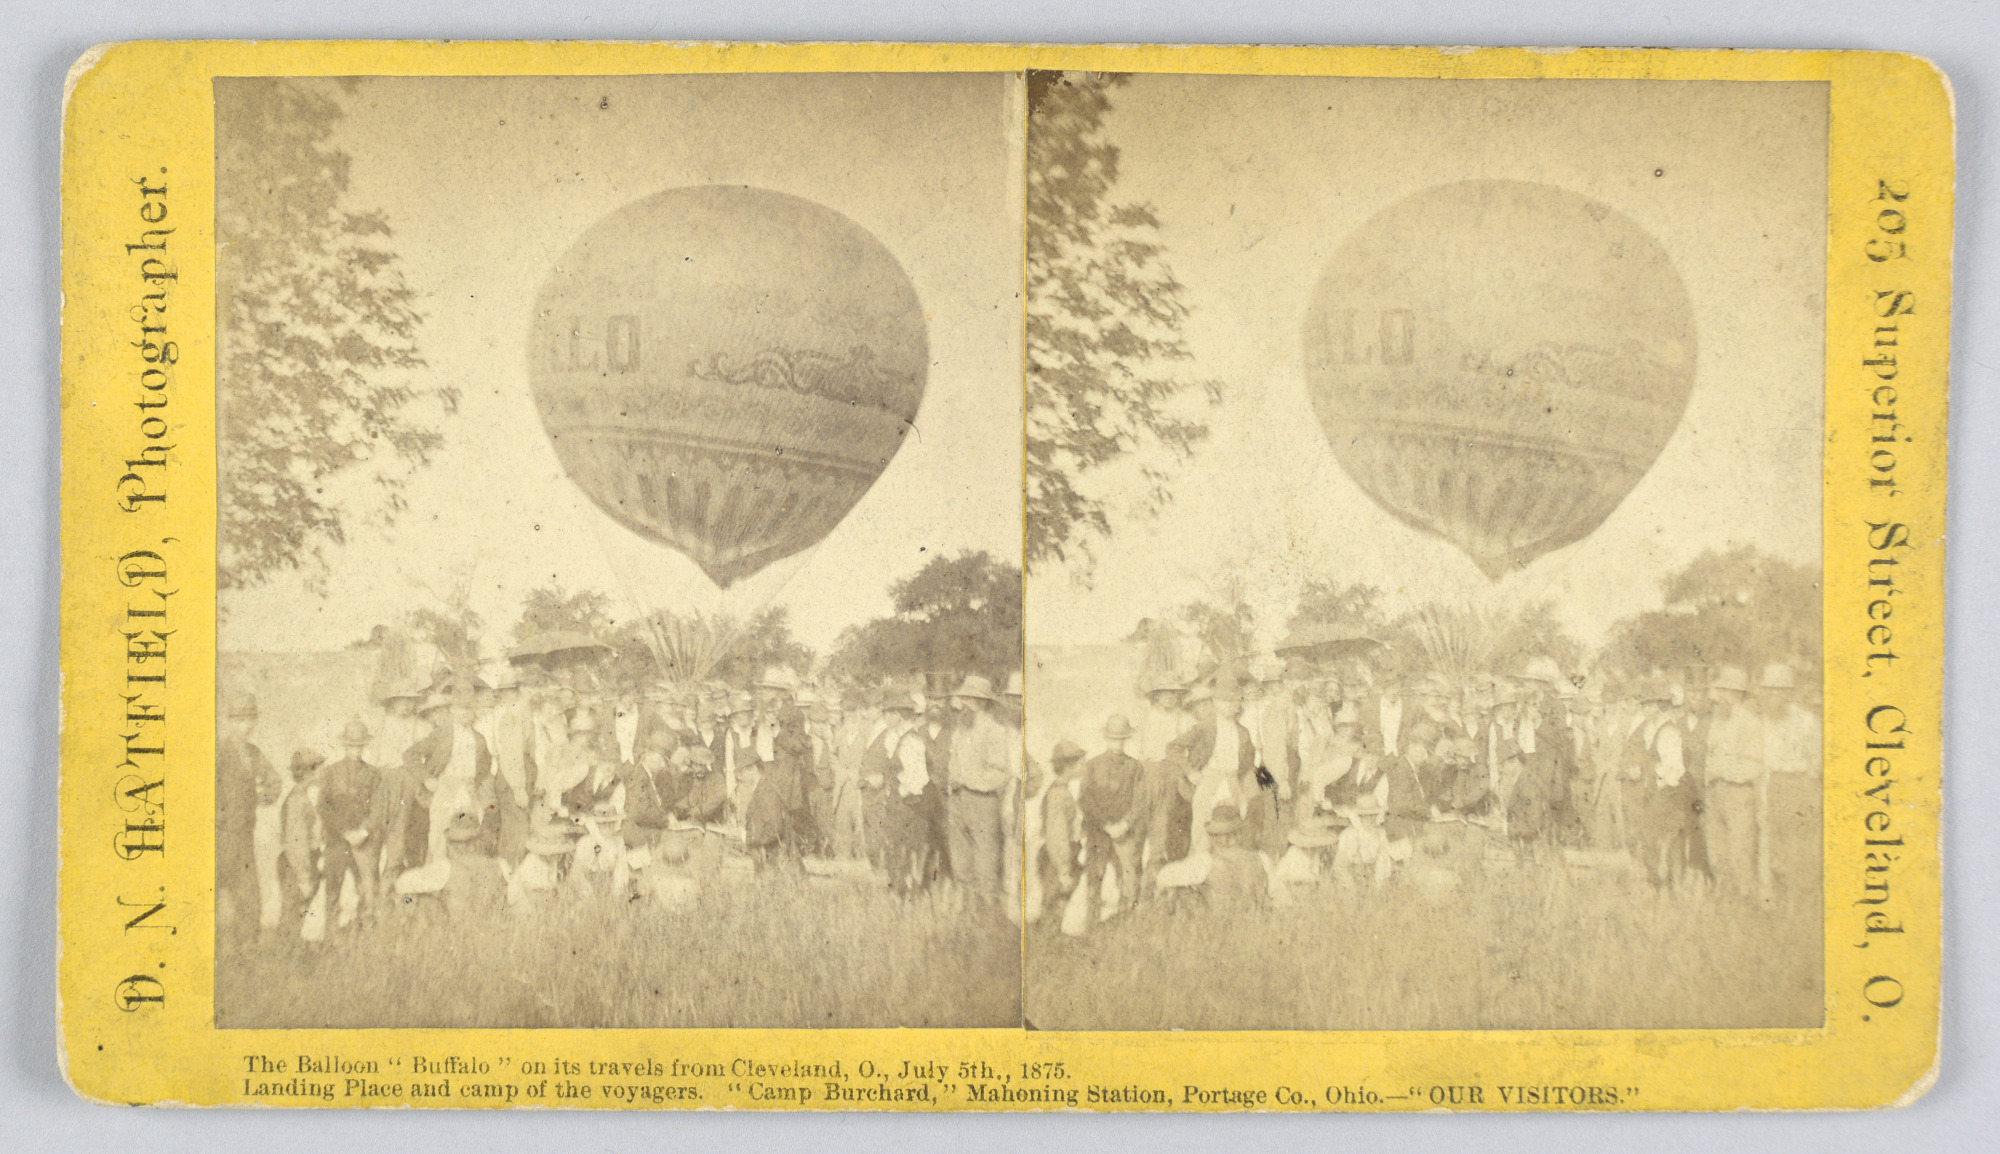 images for The Balloon 'Buffalo'